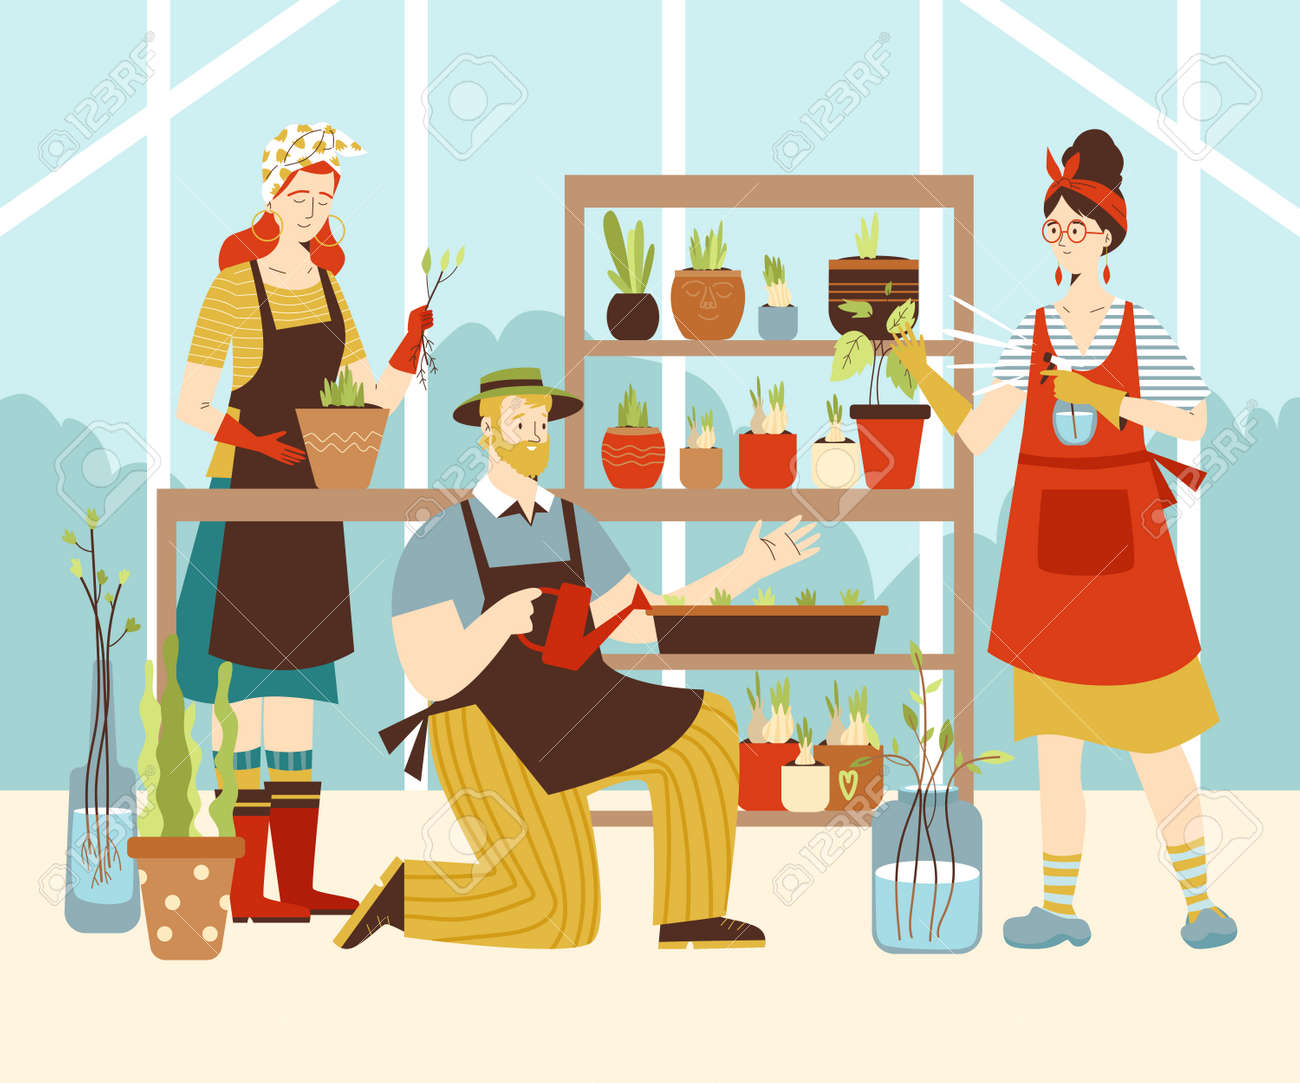 Greenhouse or flower shop with people grow plants, flat vector illustration. - 173415181